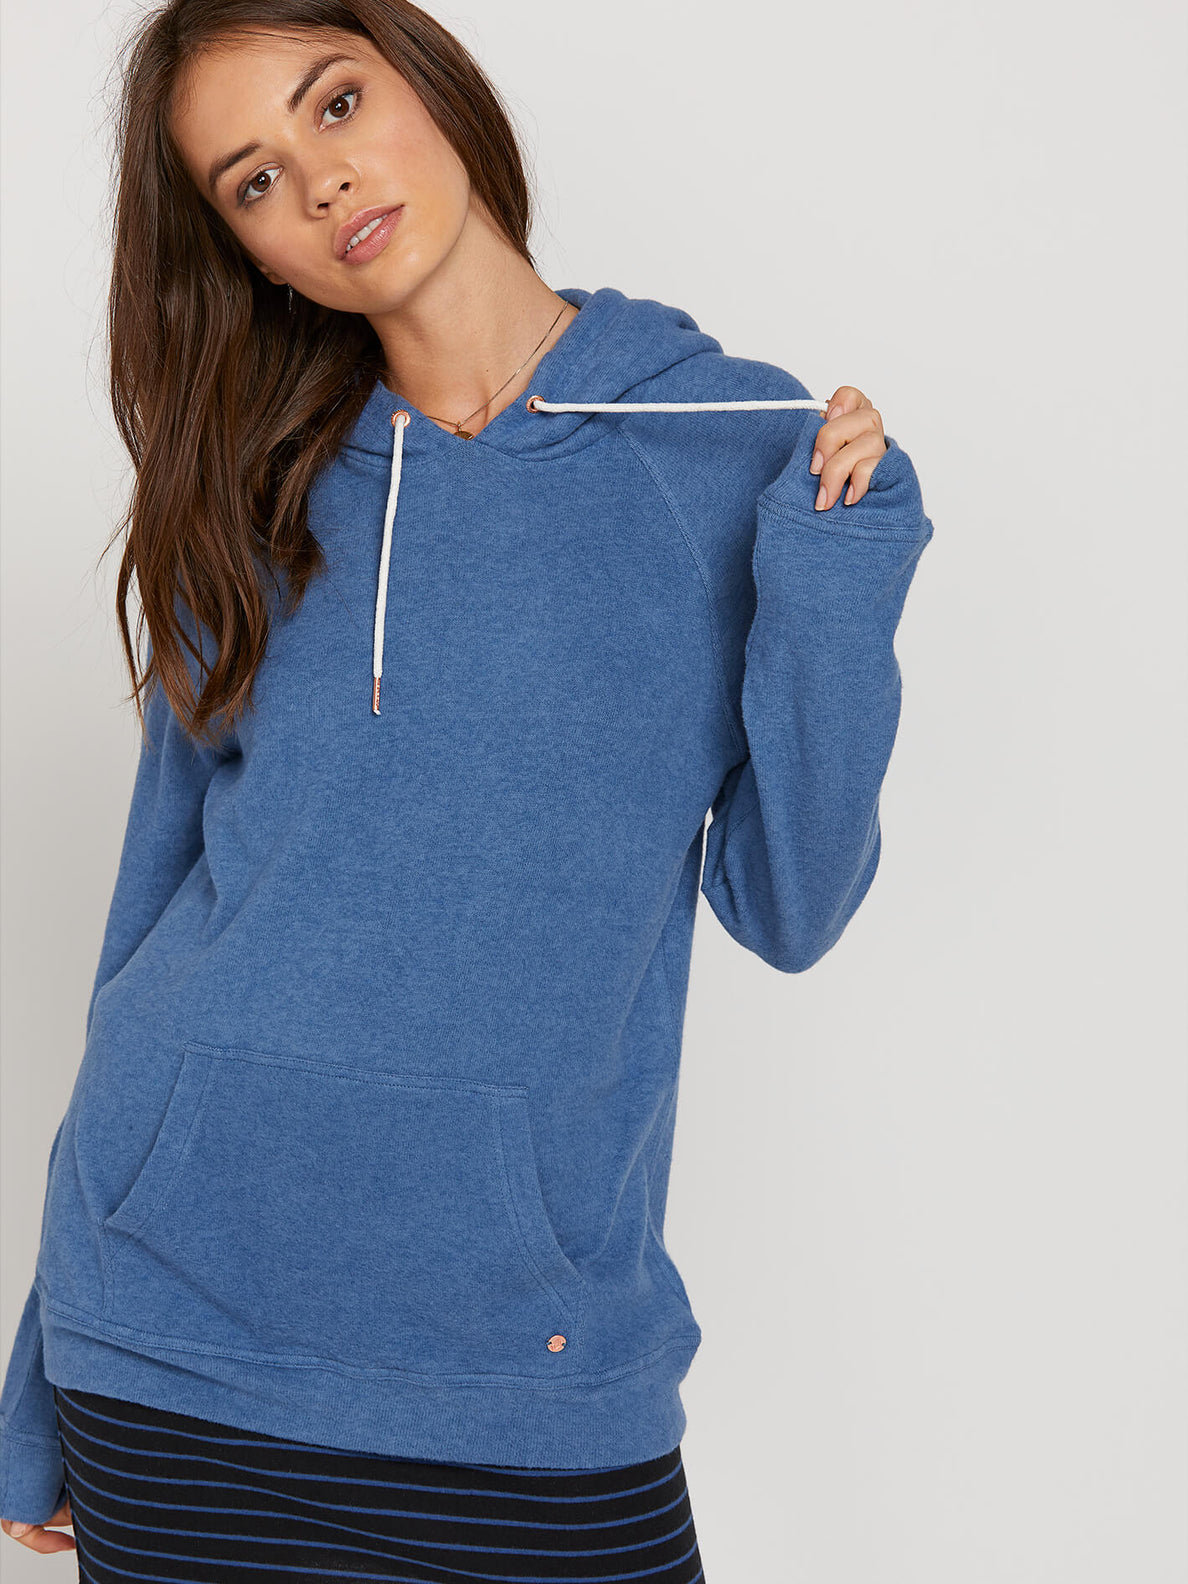 Lived In Lounge Hoodie In Blue Drift, Fifth Alternate View